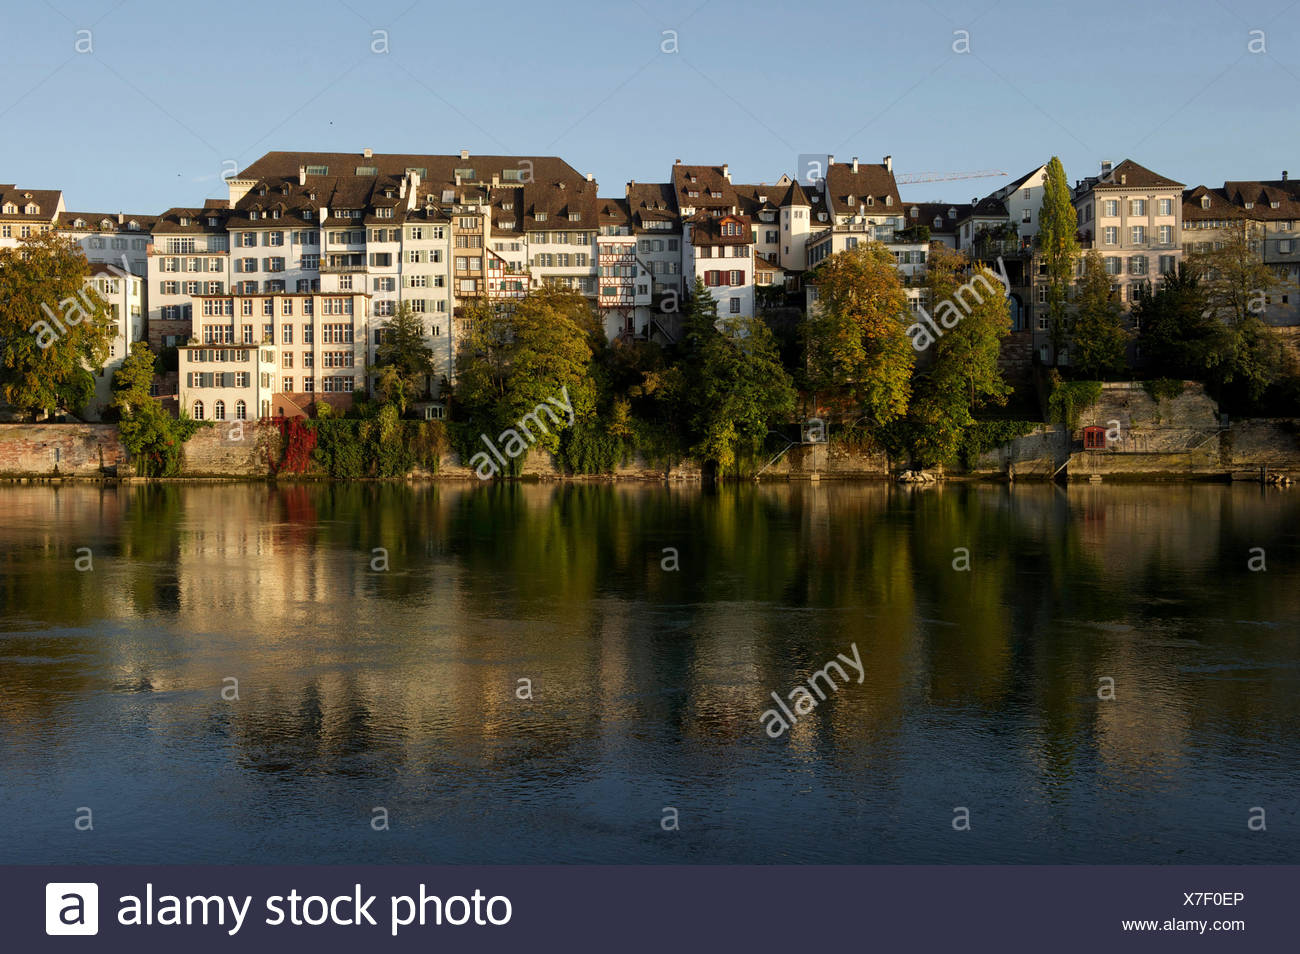 Canton Of Basel Stadt Stock Photos Canton Of Basel Stadt Stock